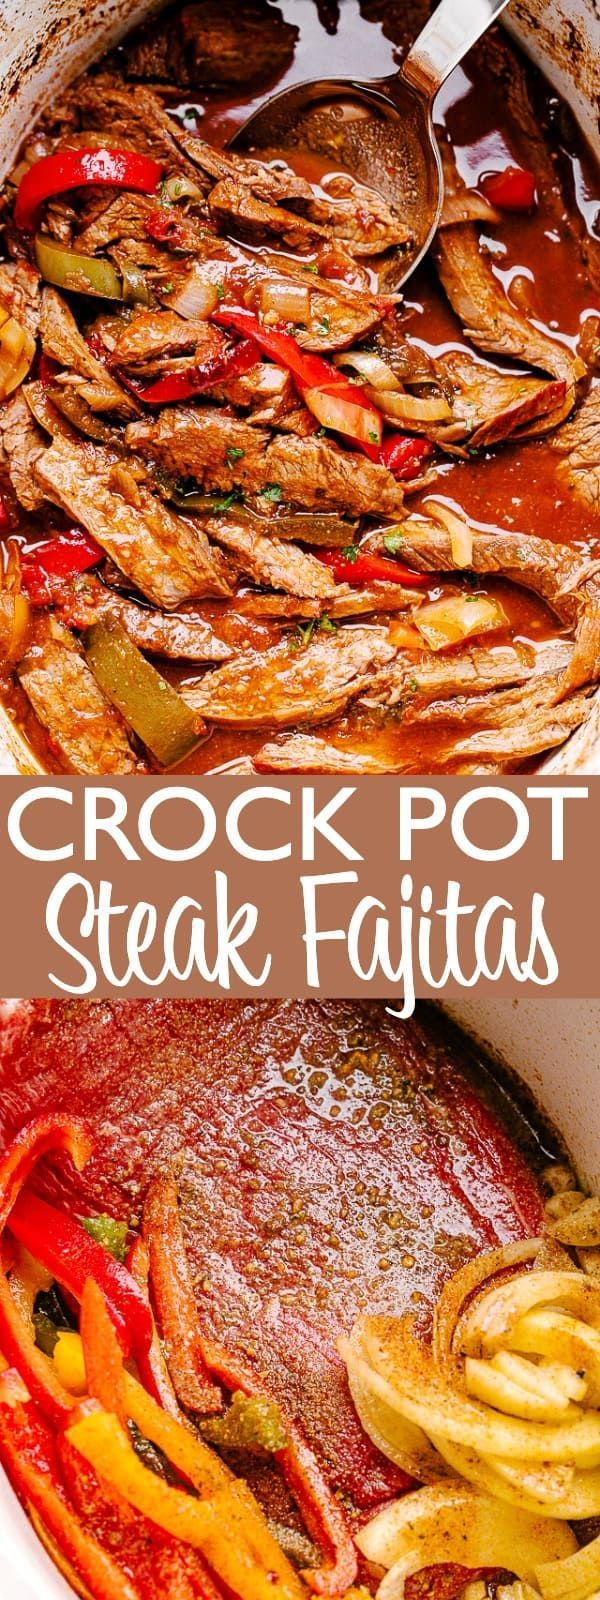 Crock Pot Steak Fajitas Recipe | Easy Crock Pot Dinner Idea